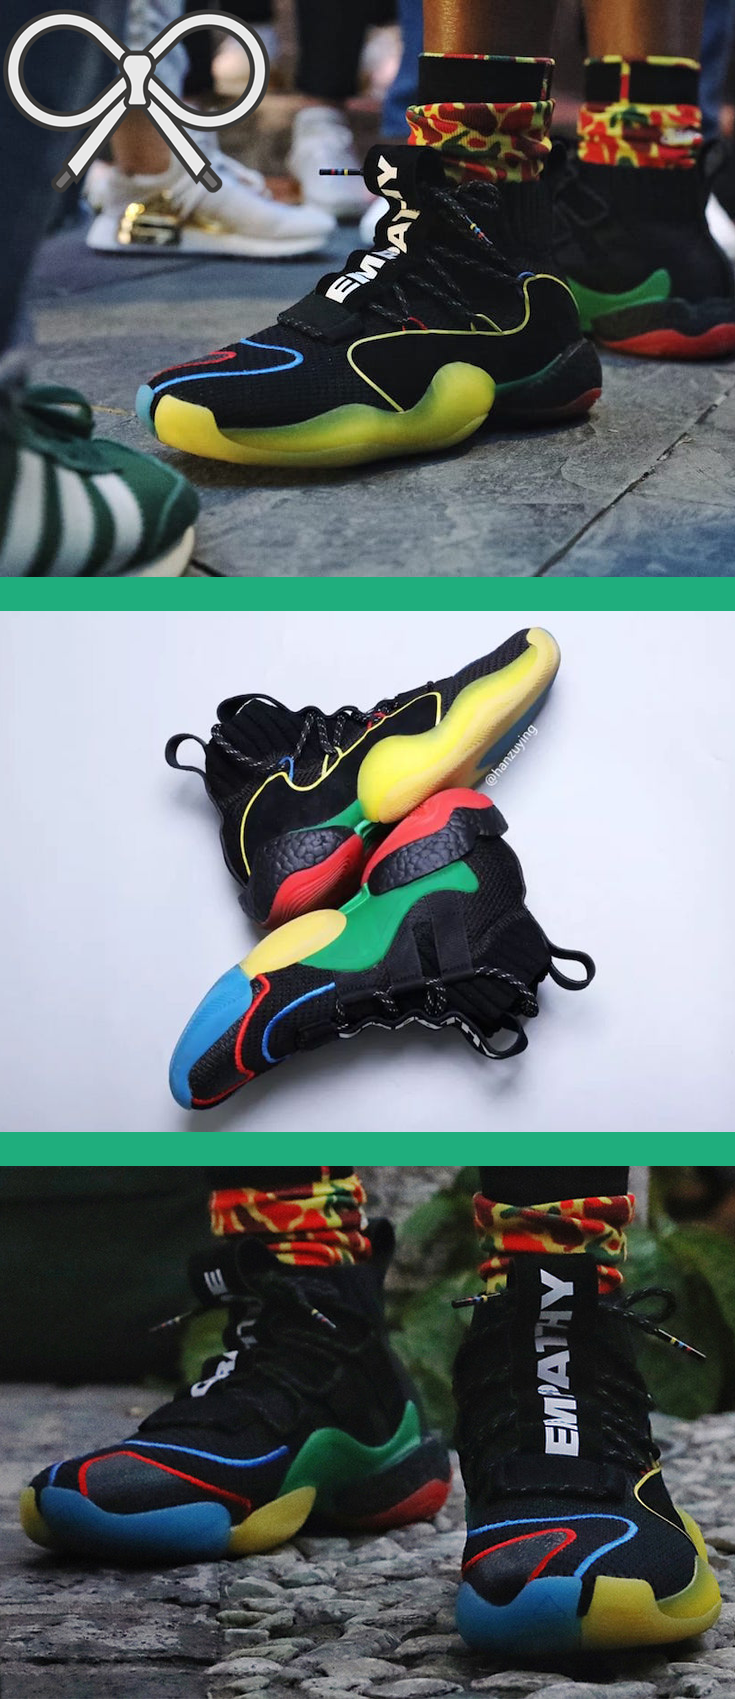 67c3b6456a7ab Lifestyle sneakers from Pharrell Williams.